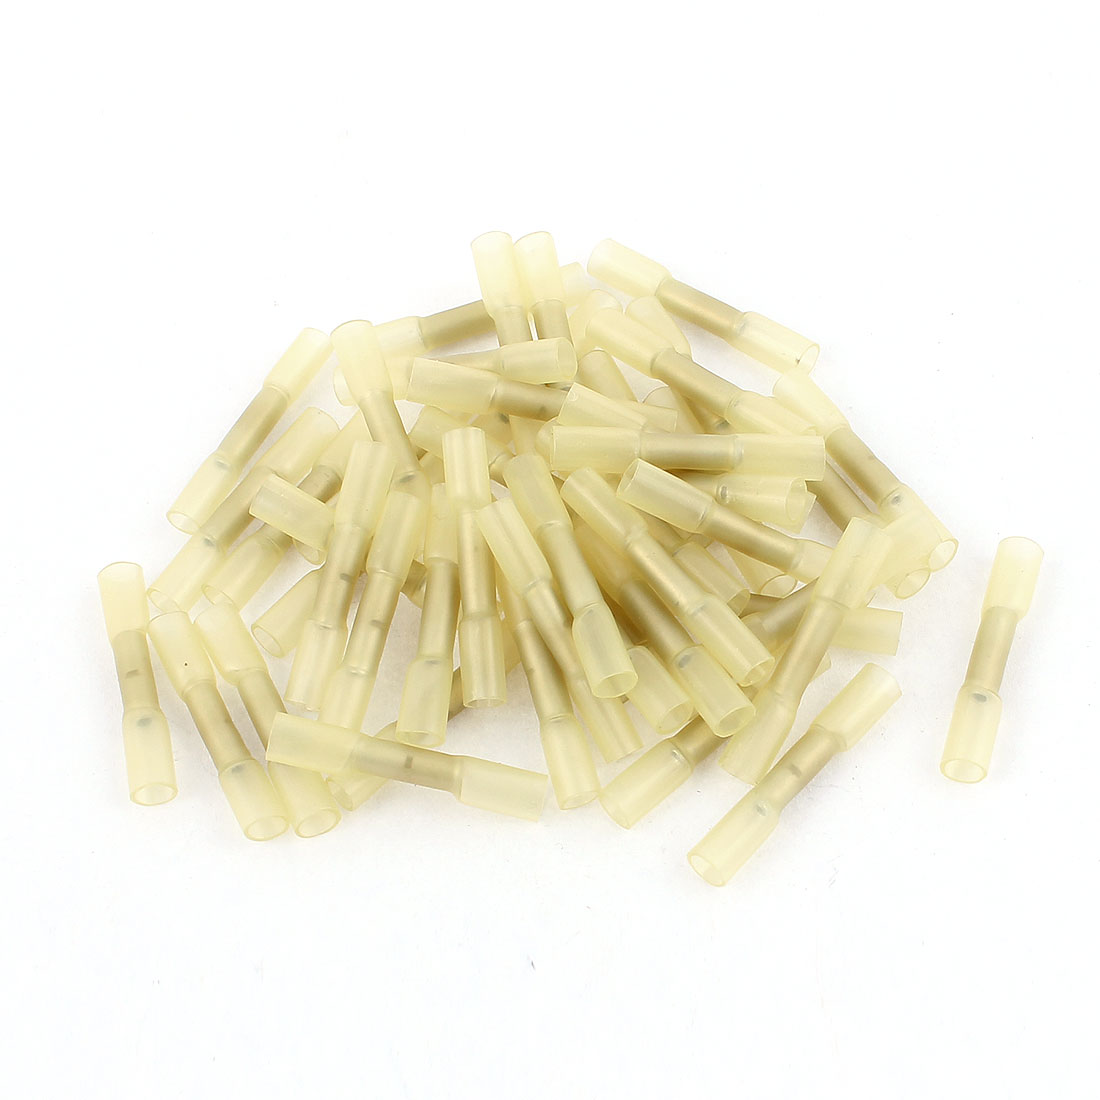 50 Pcs BHT0.5 Heat Shrink Electrical Waterproof Solder Wire Butt Terminals AWG 26-22 Yellow